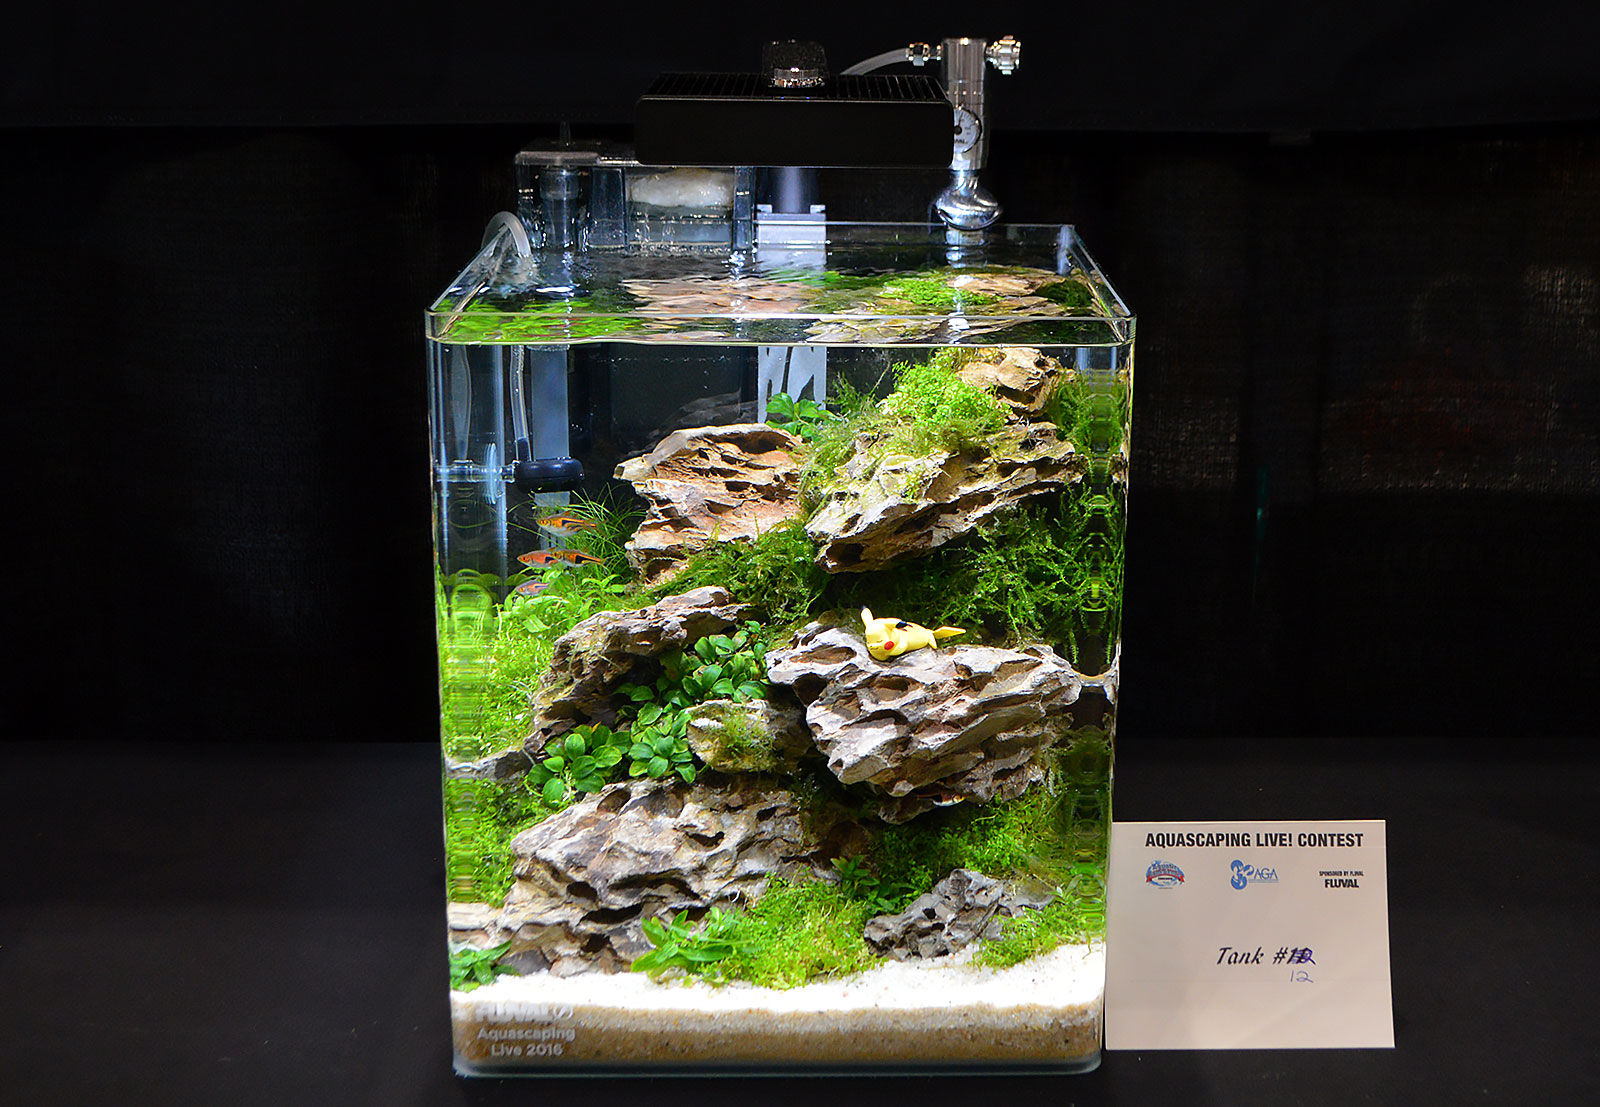 Aquascaping Live! 2016 Small Planted Tanks